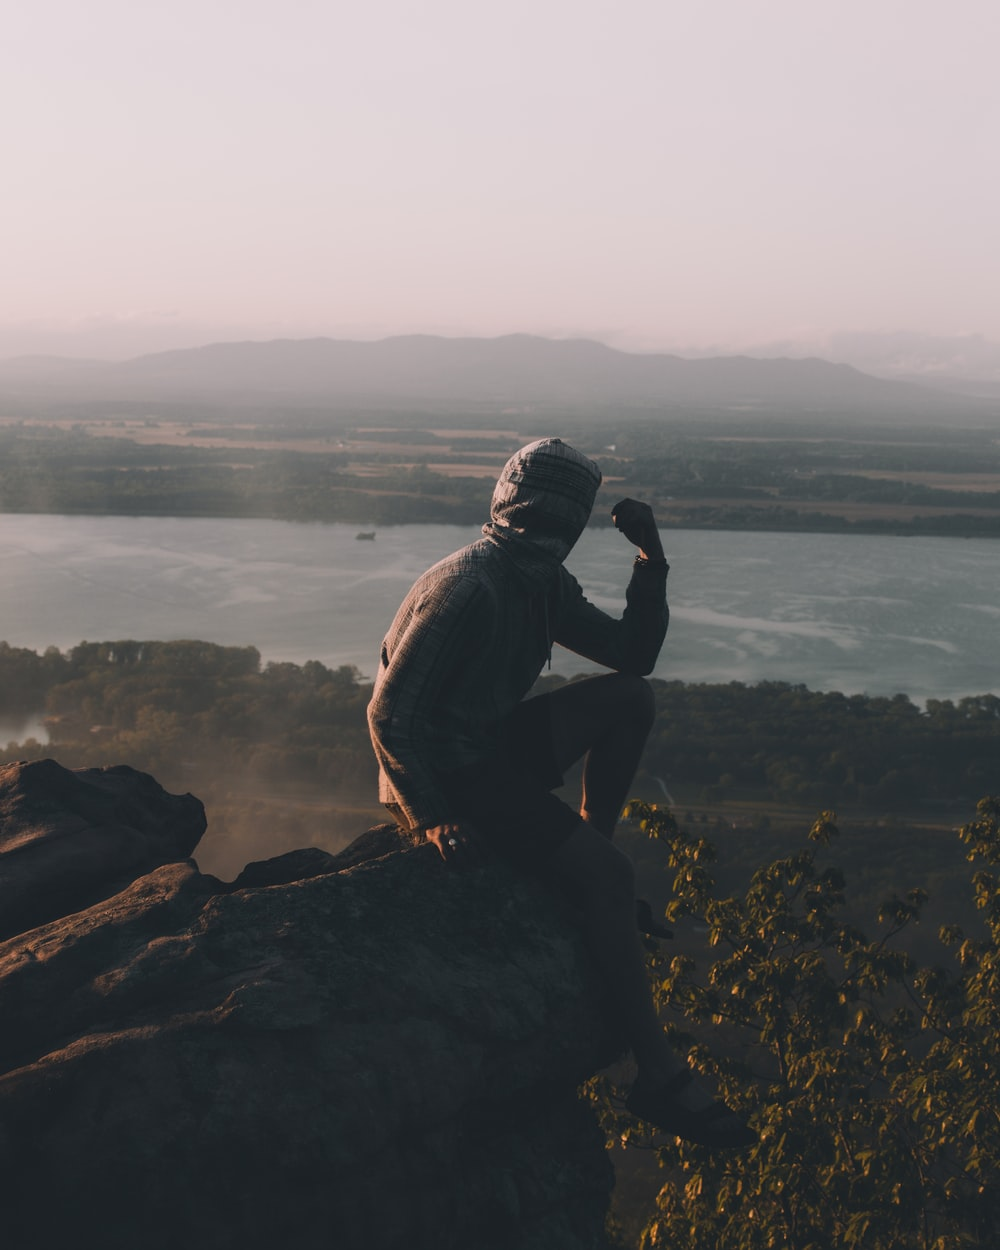 man sitting on cliff over body of water